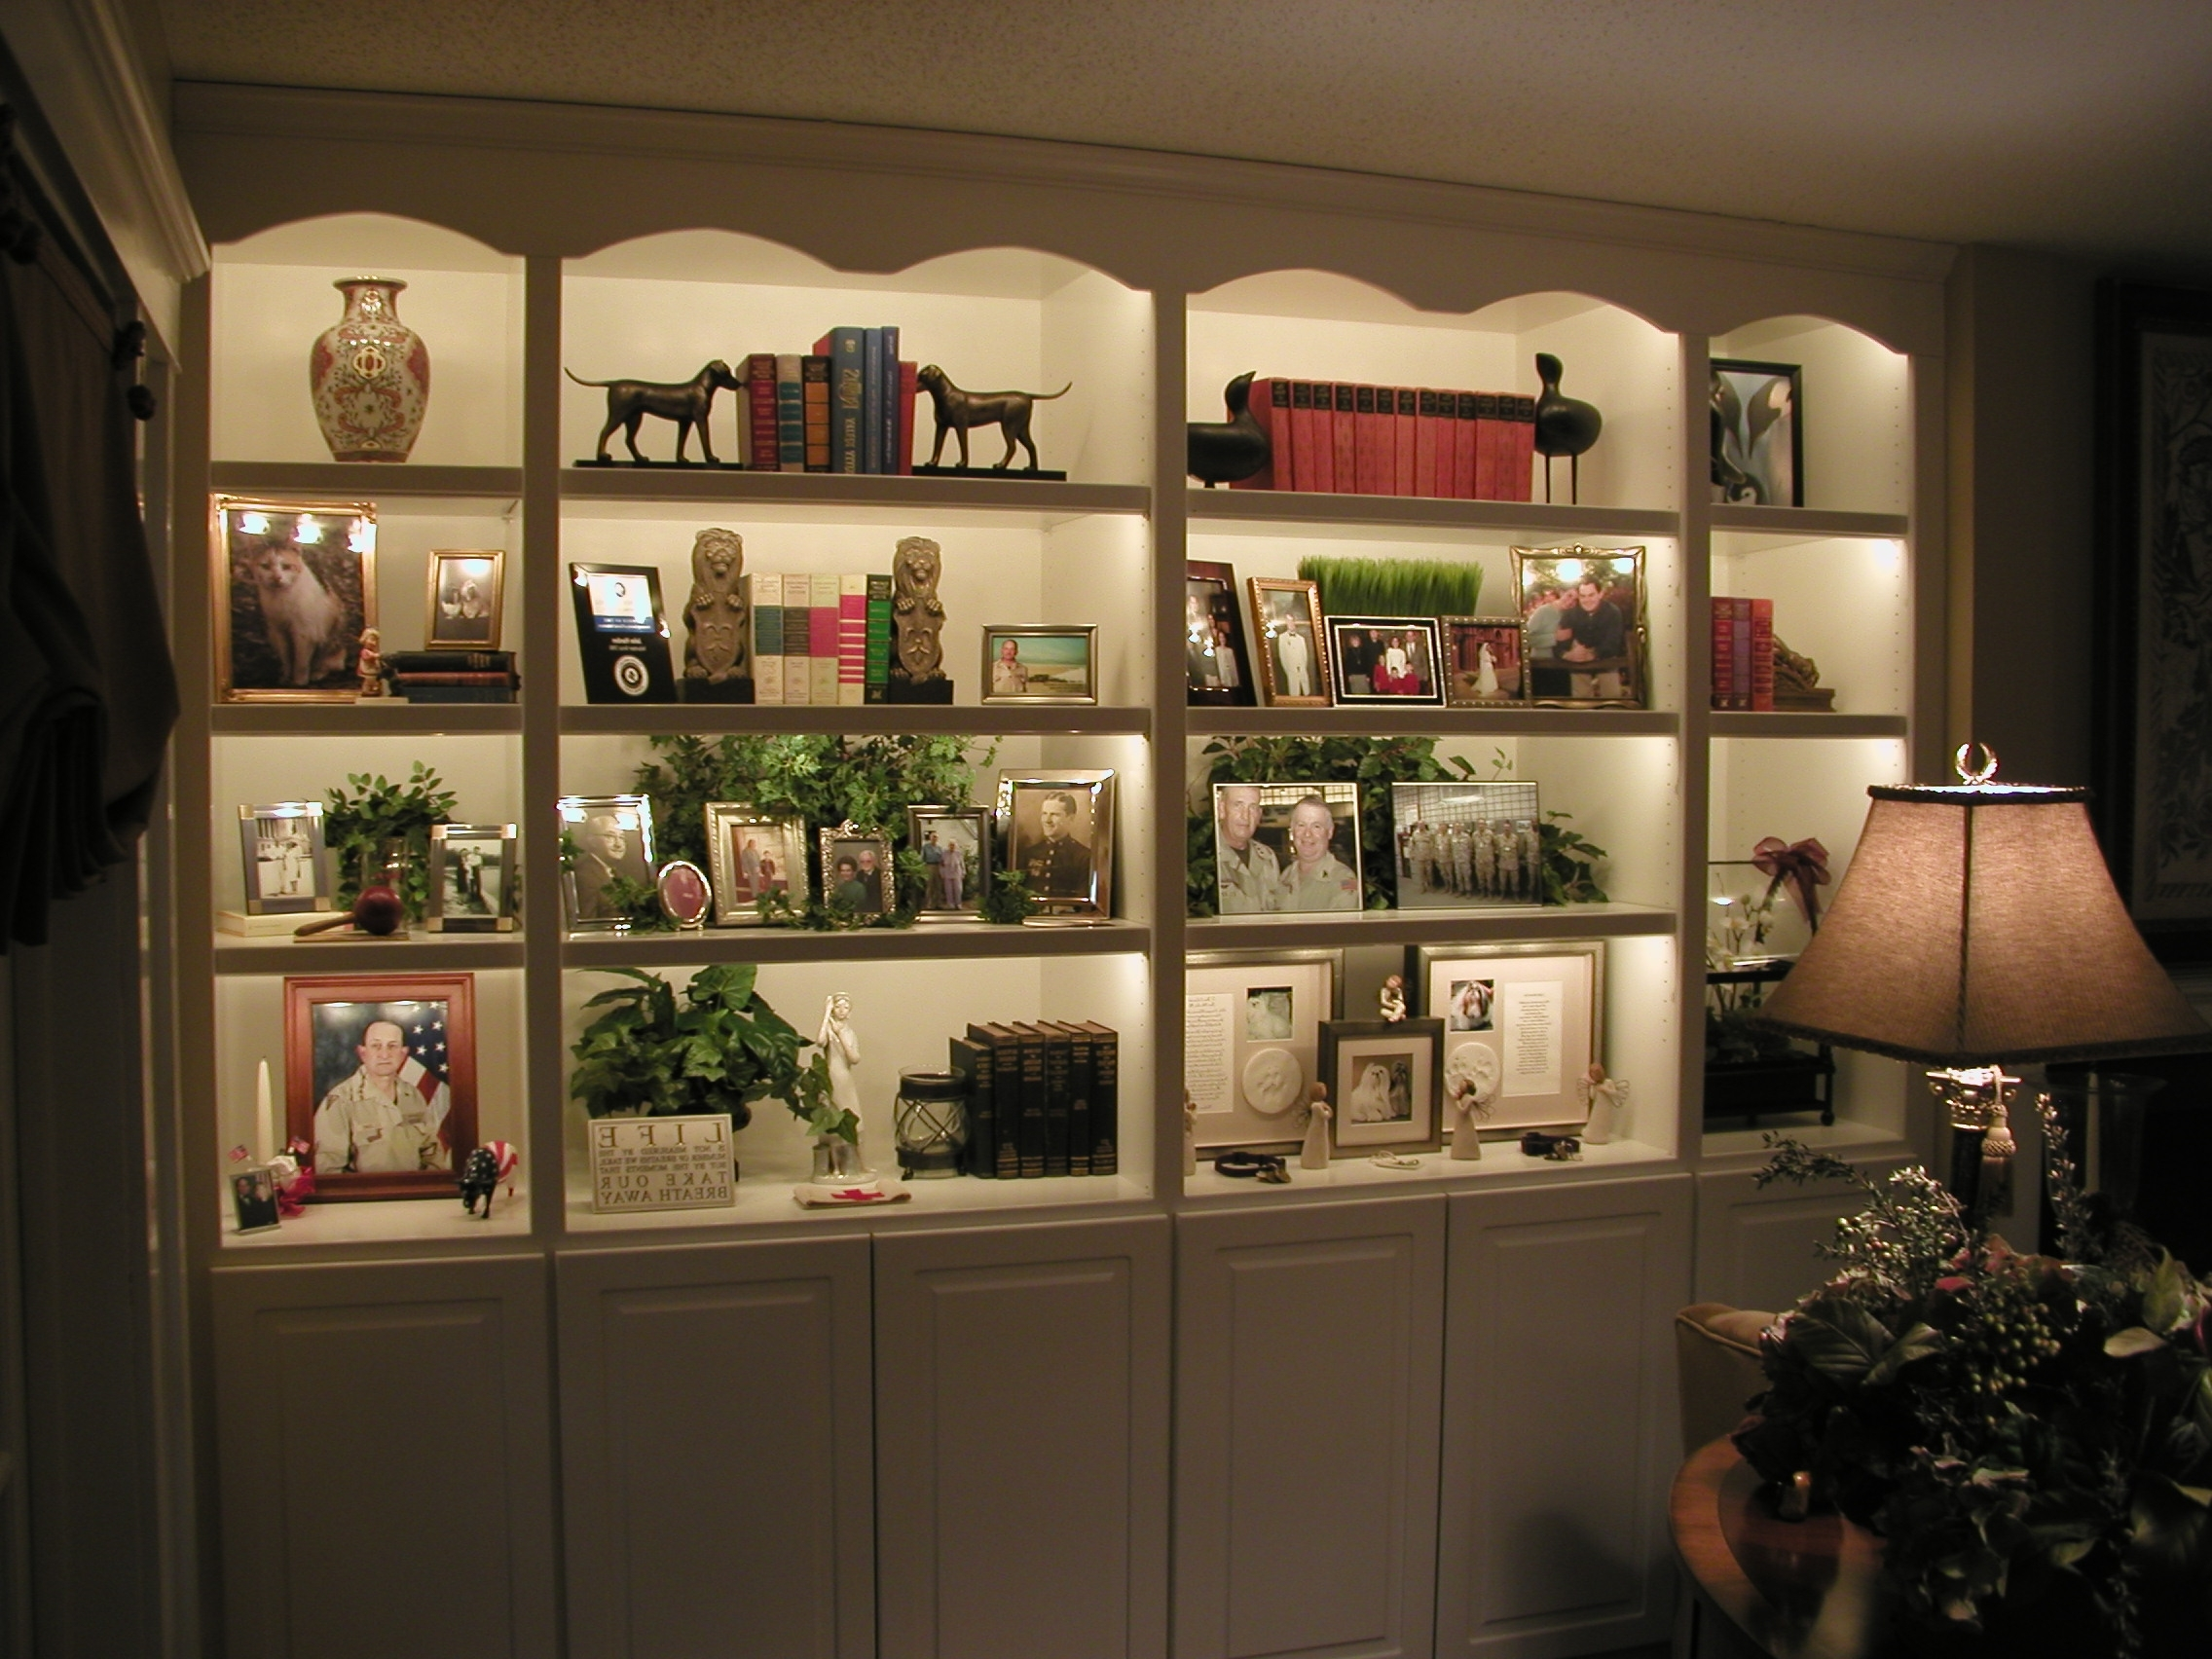 Trendy 55 Book Shelf Lighting, Bookshelf Lighting Houzz Inside Bookcases Lighting (View 12 of 15)